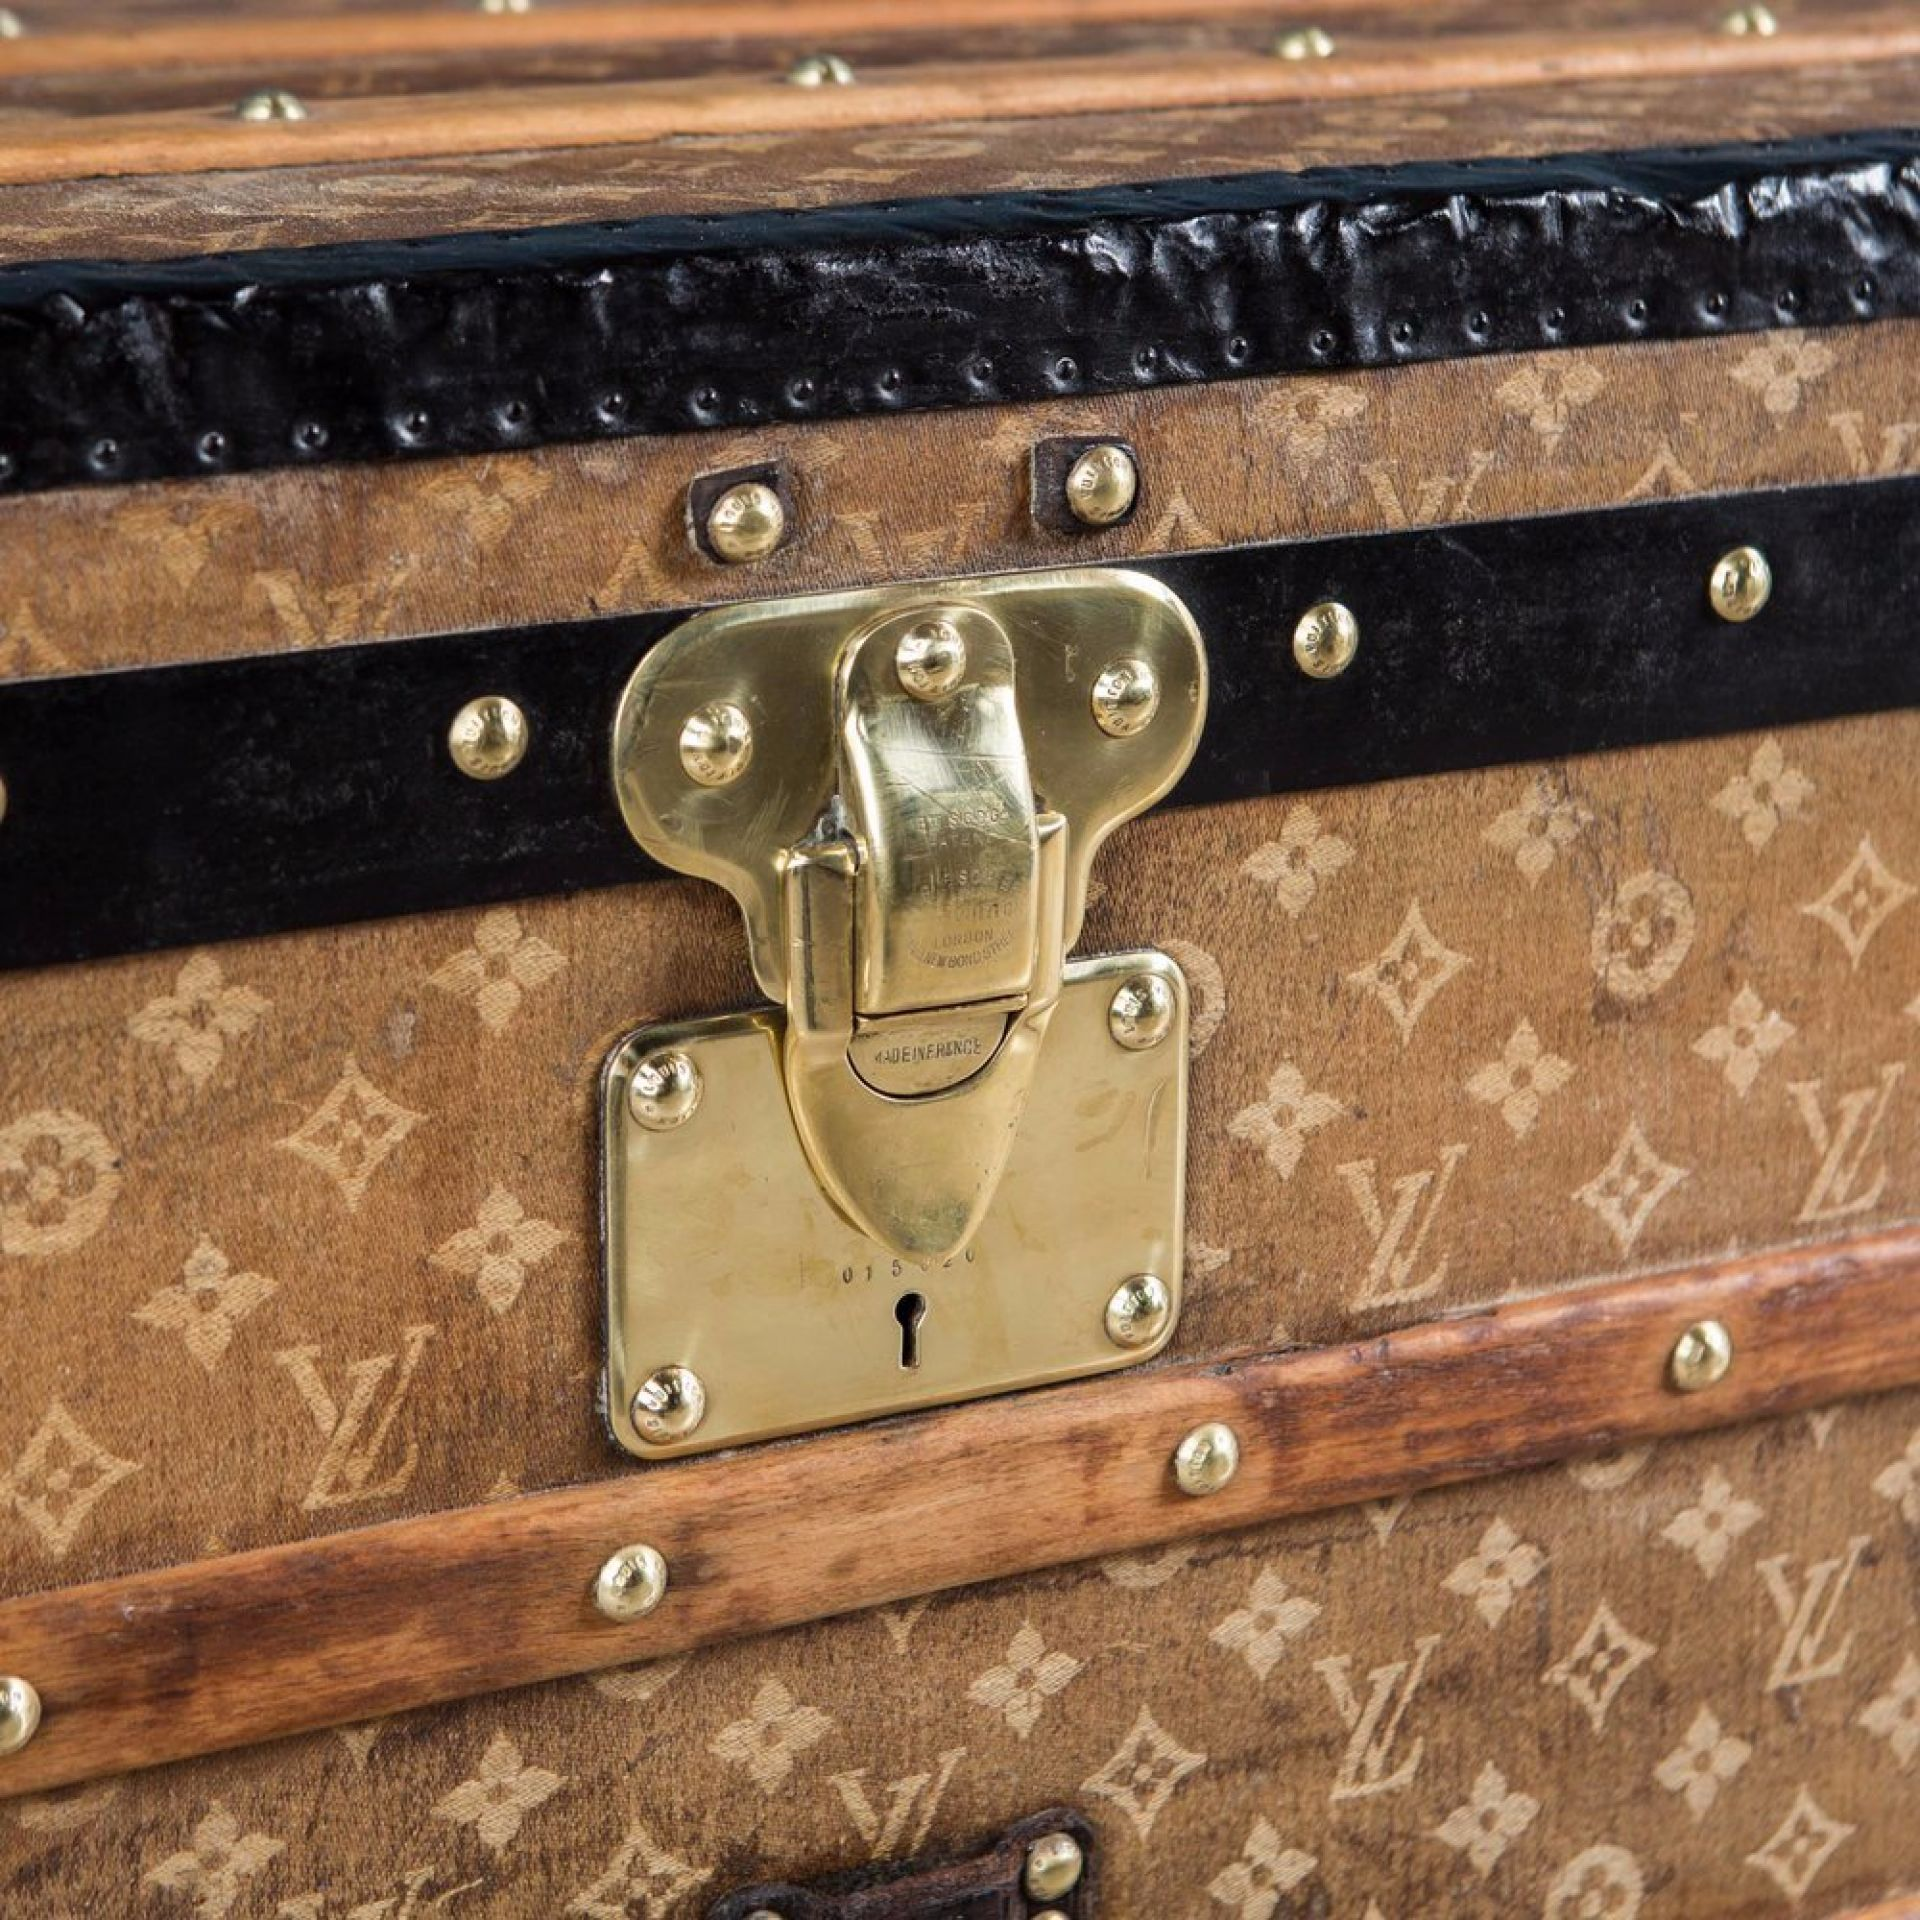 ANTIQUE 19thC LOUIS VUITTON TRUNK IN WOVEN CANVAS, PARIS c.1890